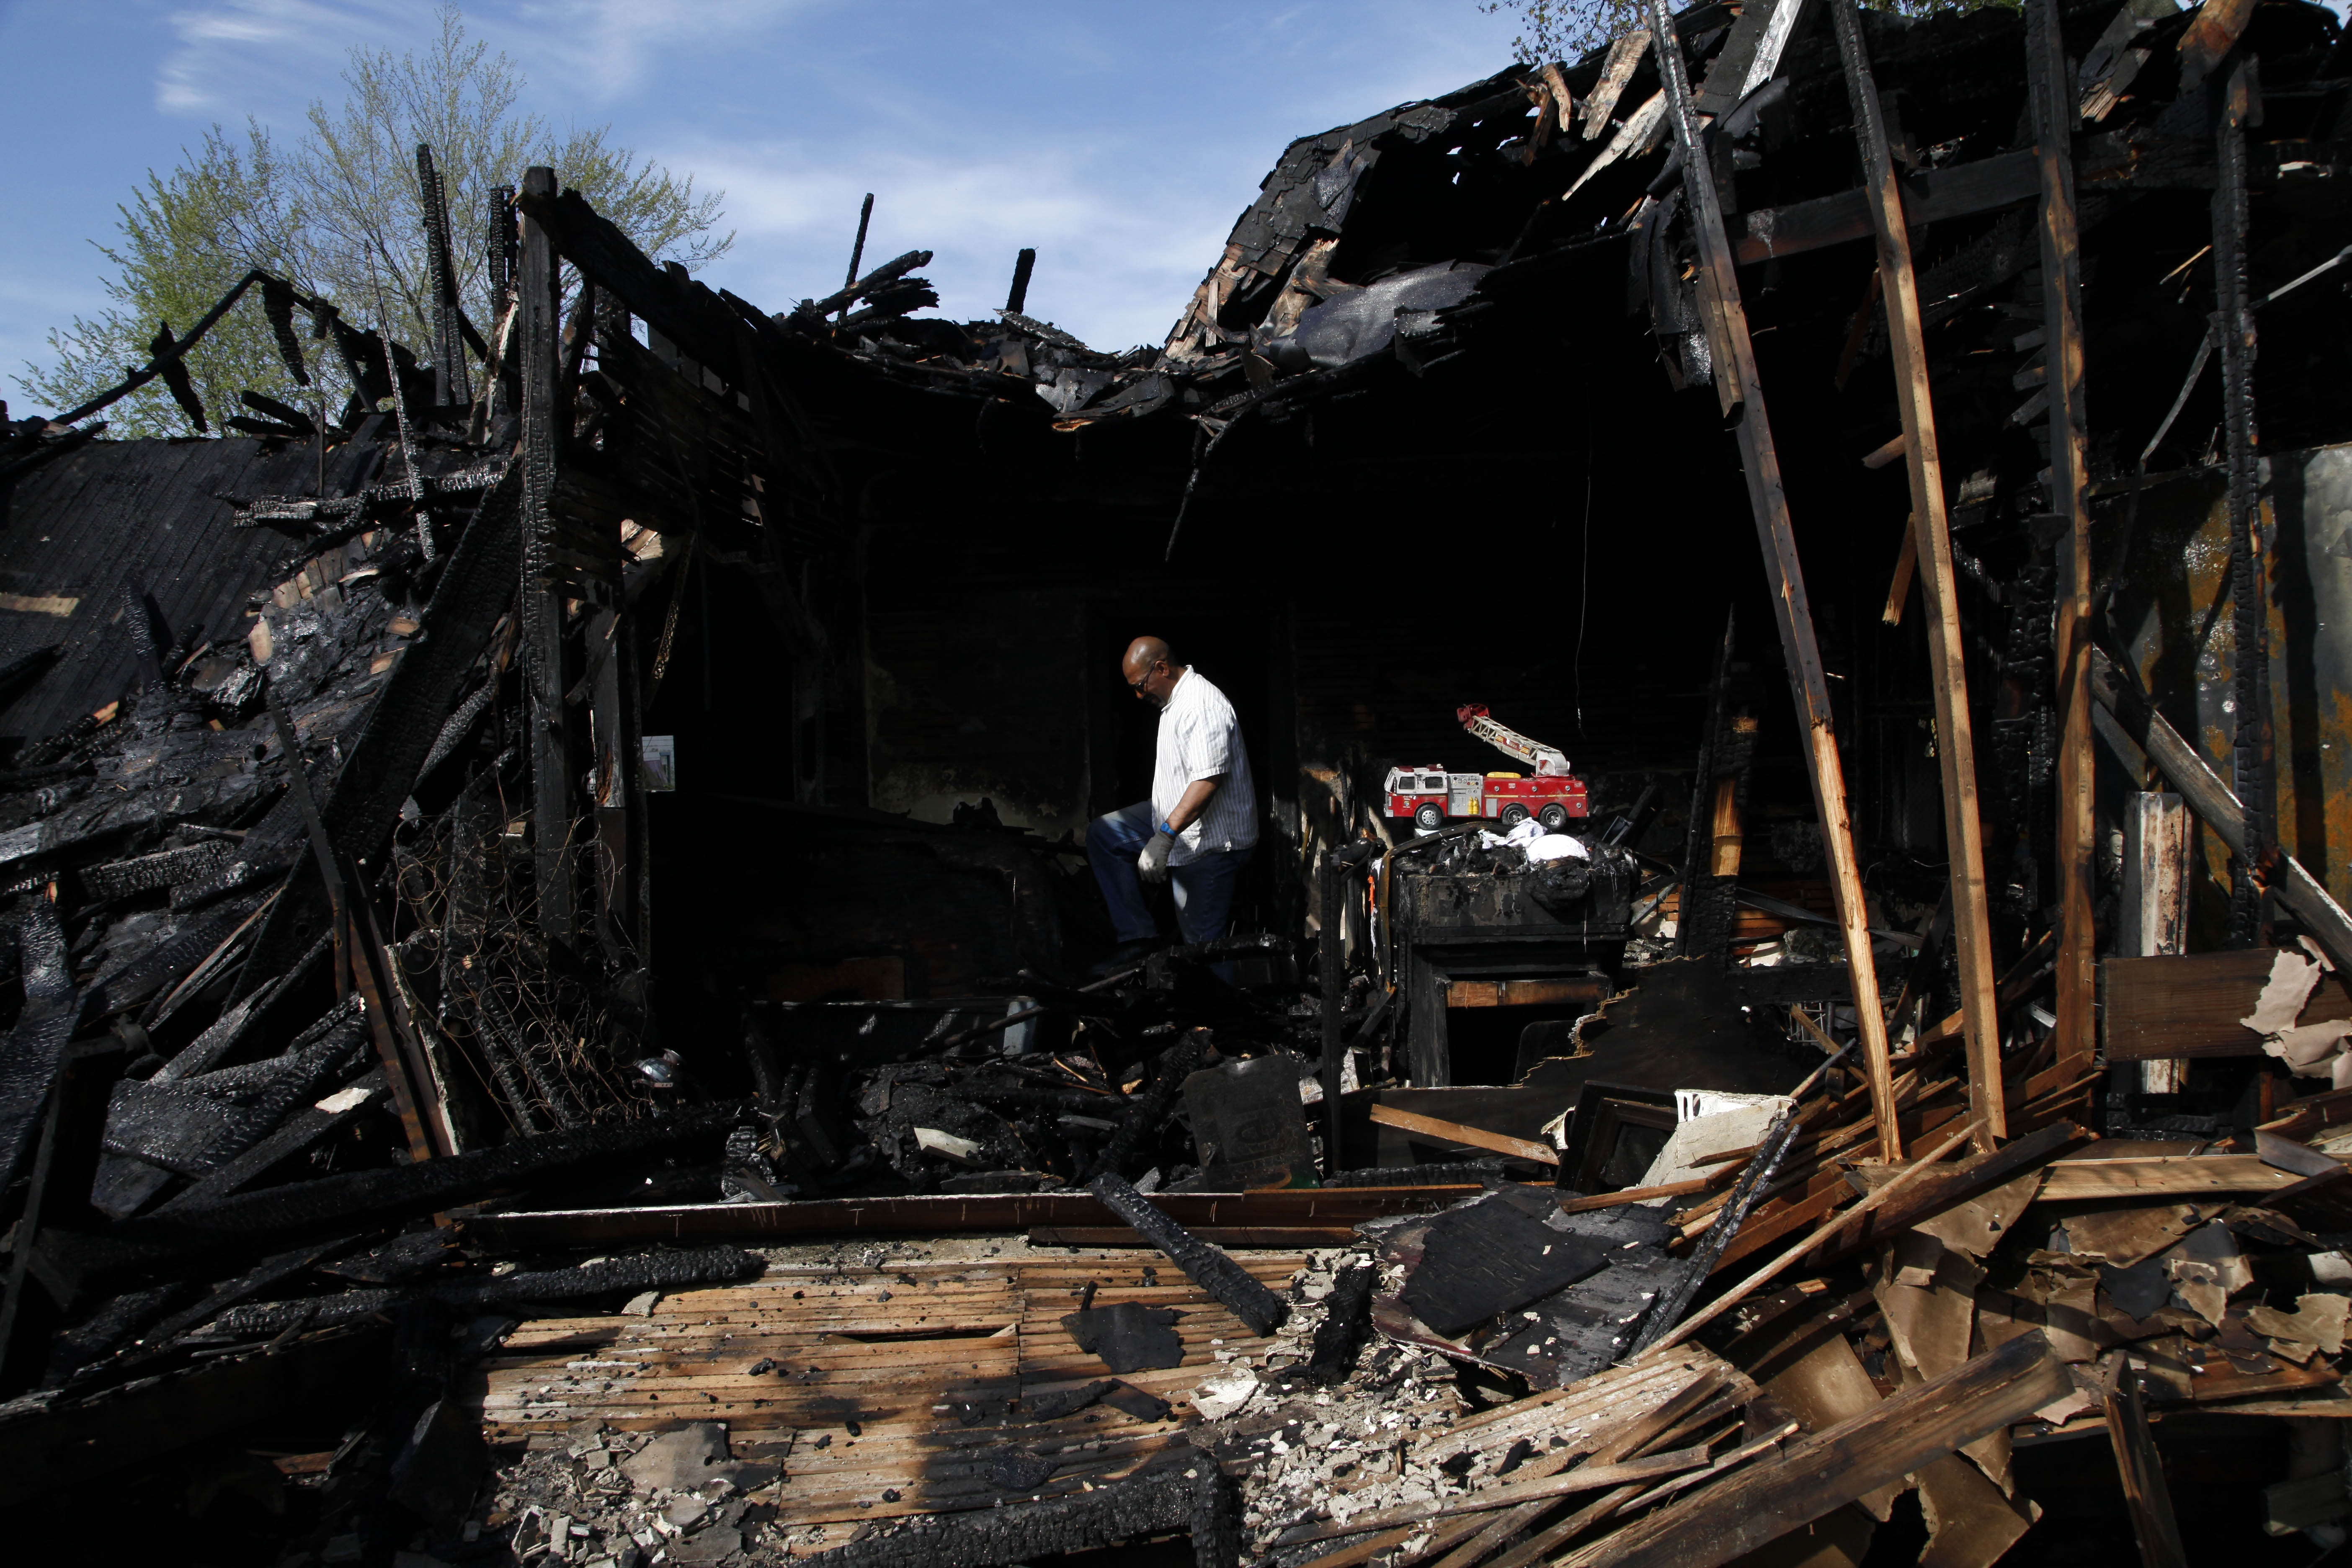 Fire destroys another building at the Heidelberg Project